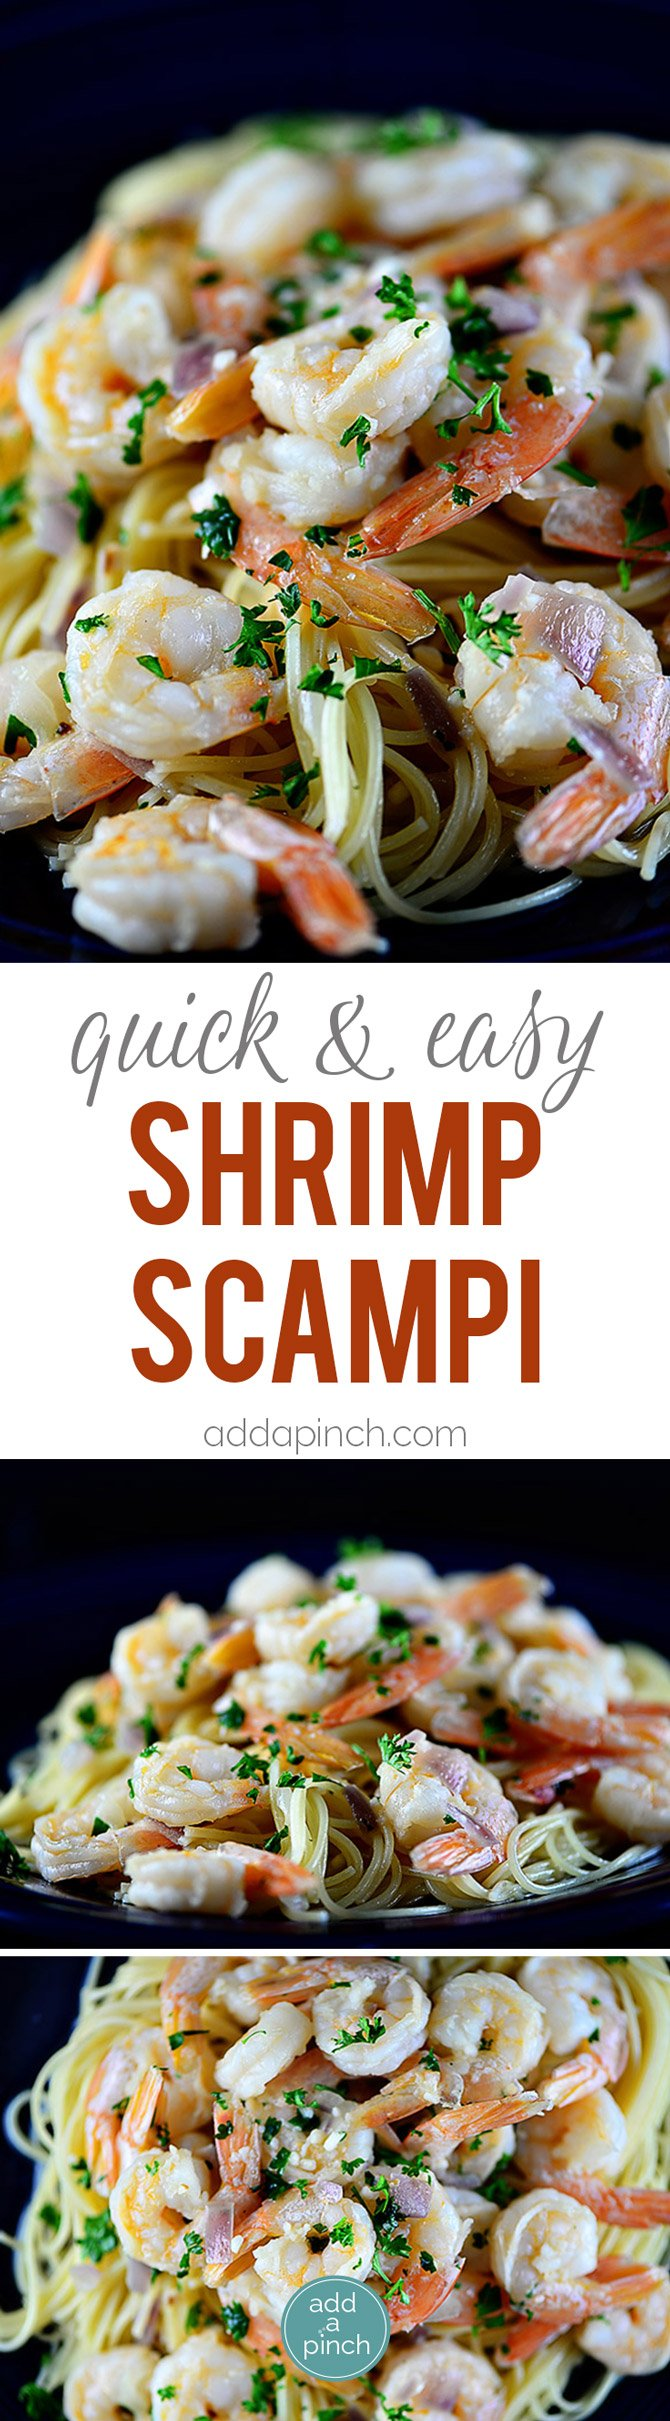 Shrimp scampi is easy and elegant, perfect for entertaining. Made of shrimp sautéed in butter and olive oil, garlic, and gently tossed with red onion and parsley, it is a classic. // addapinch.com